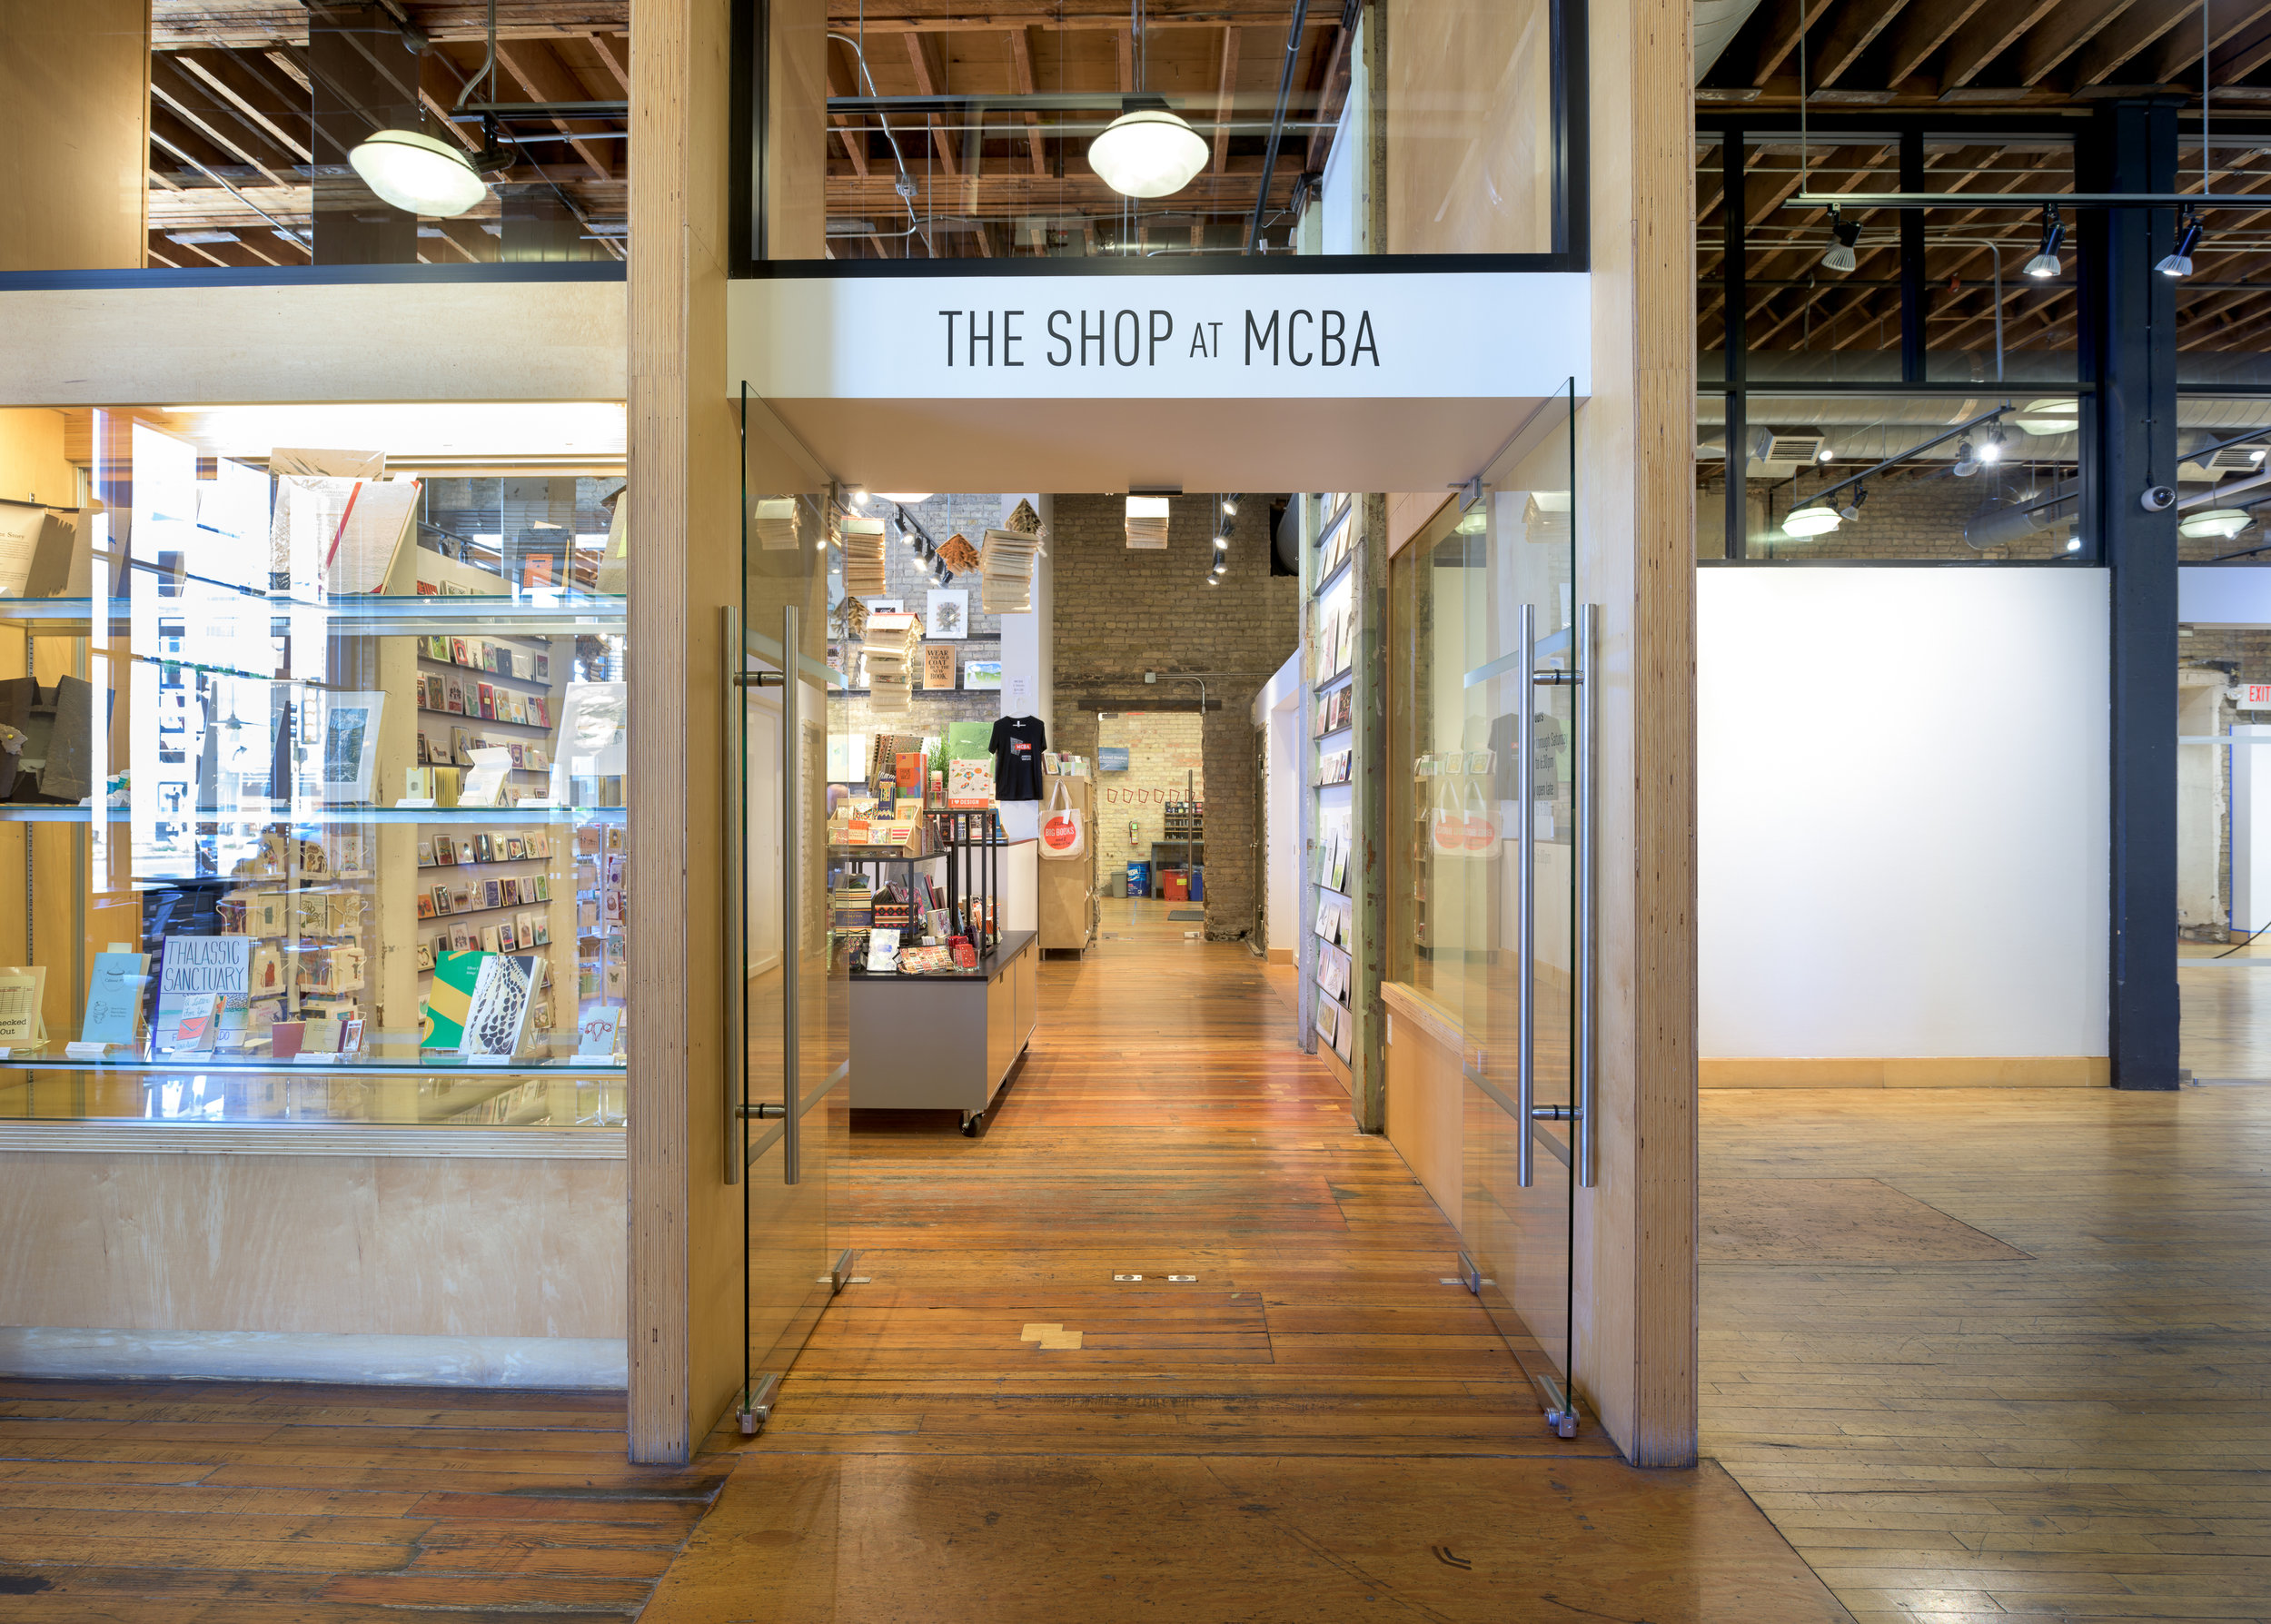 Minneapolis Center for Book Arts gift shop remodel by Christian Dean Architecture.